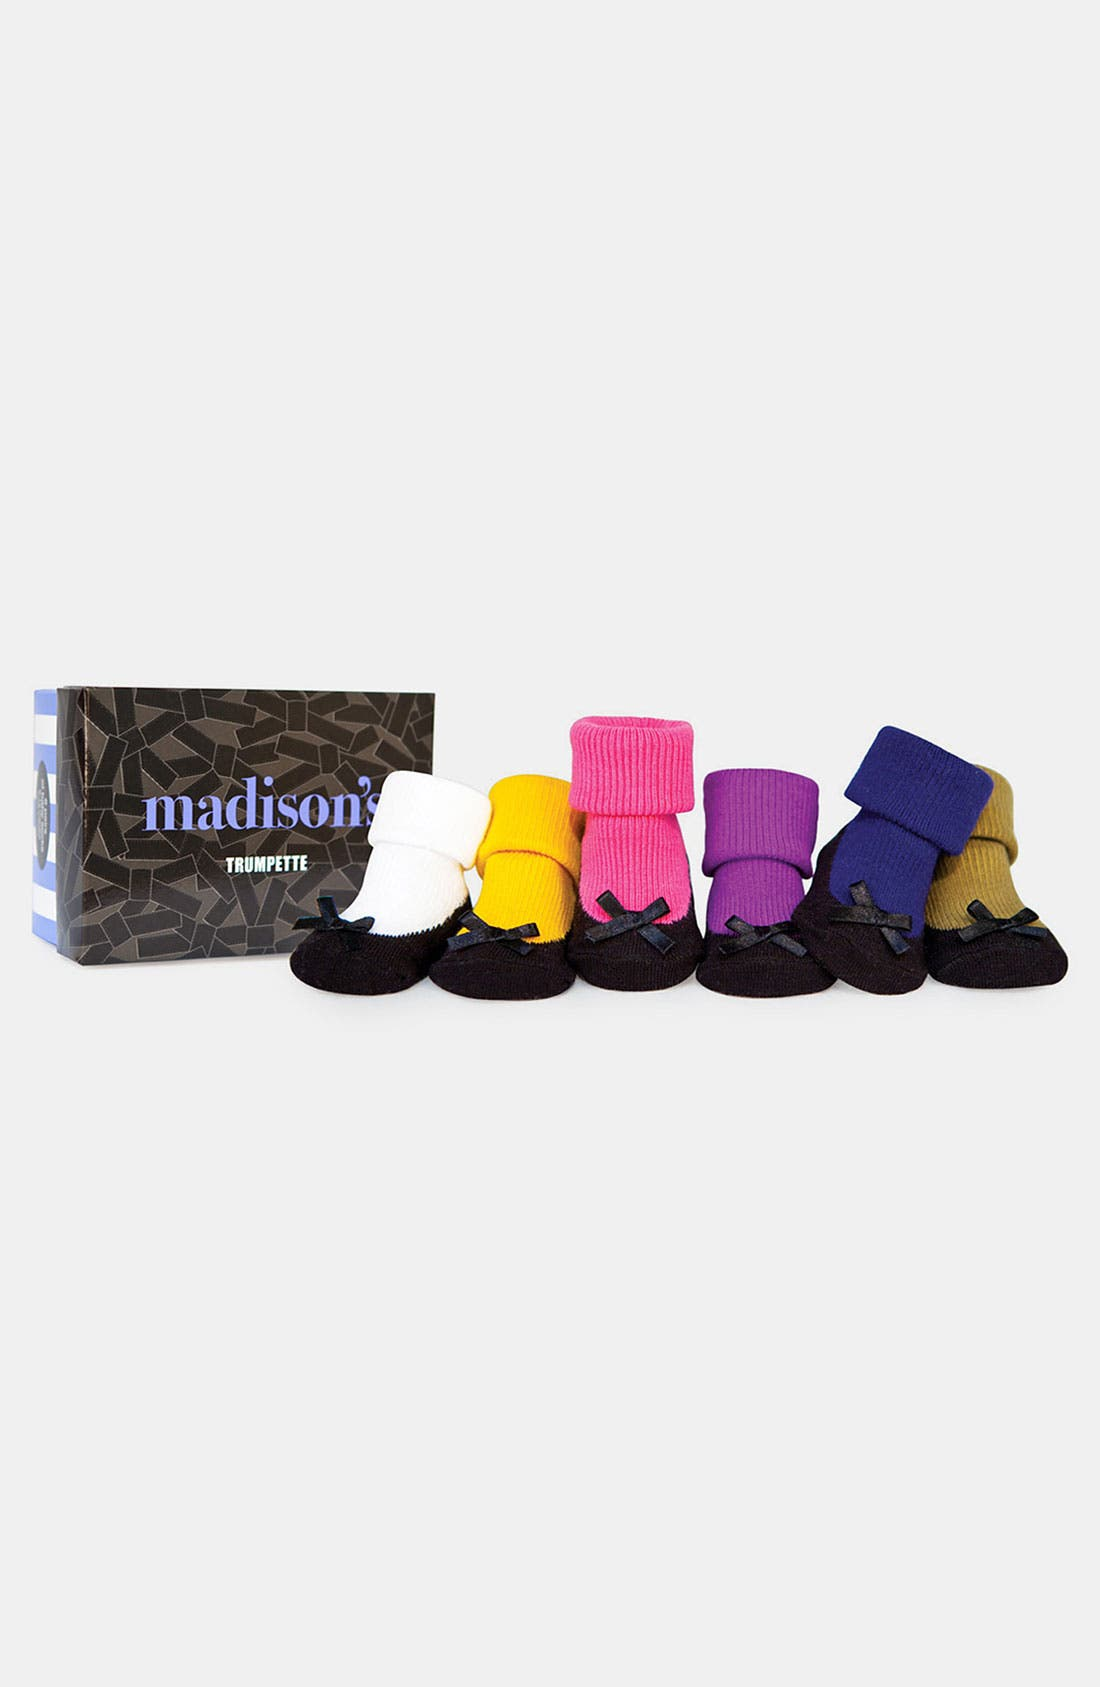 Alternate Image 1 Selected - Trumpette 'Madison's' Socks (6-Pack)(Baby Girls)